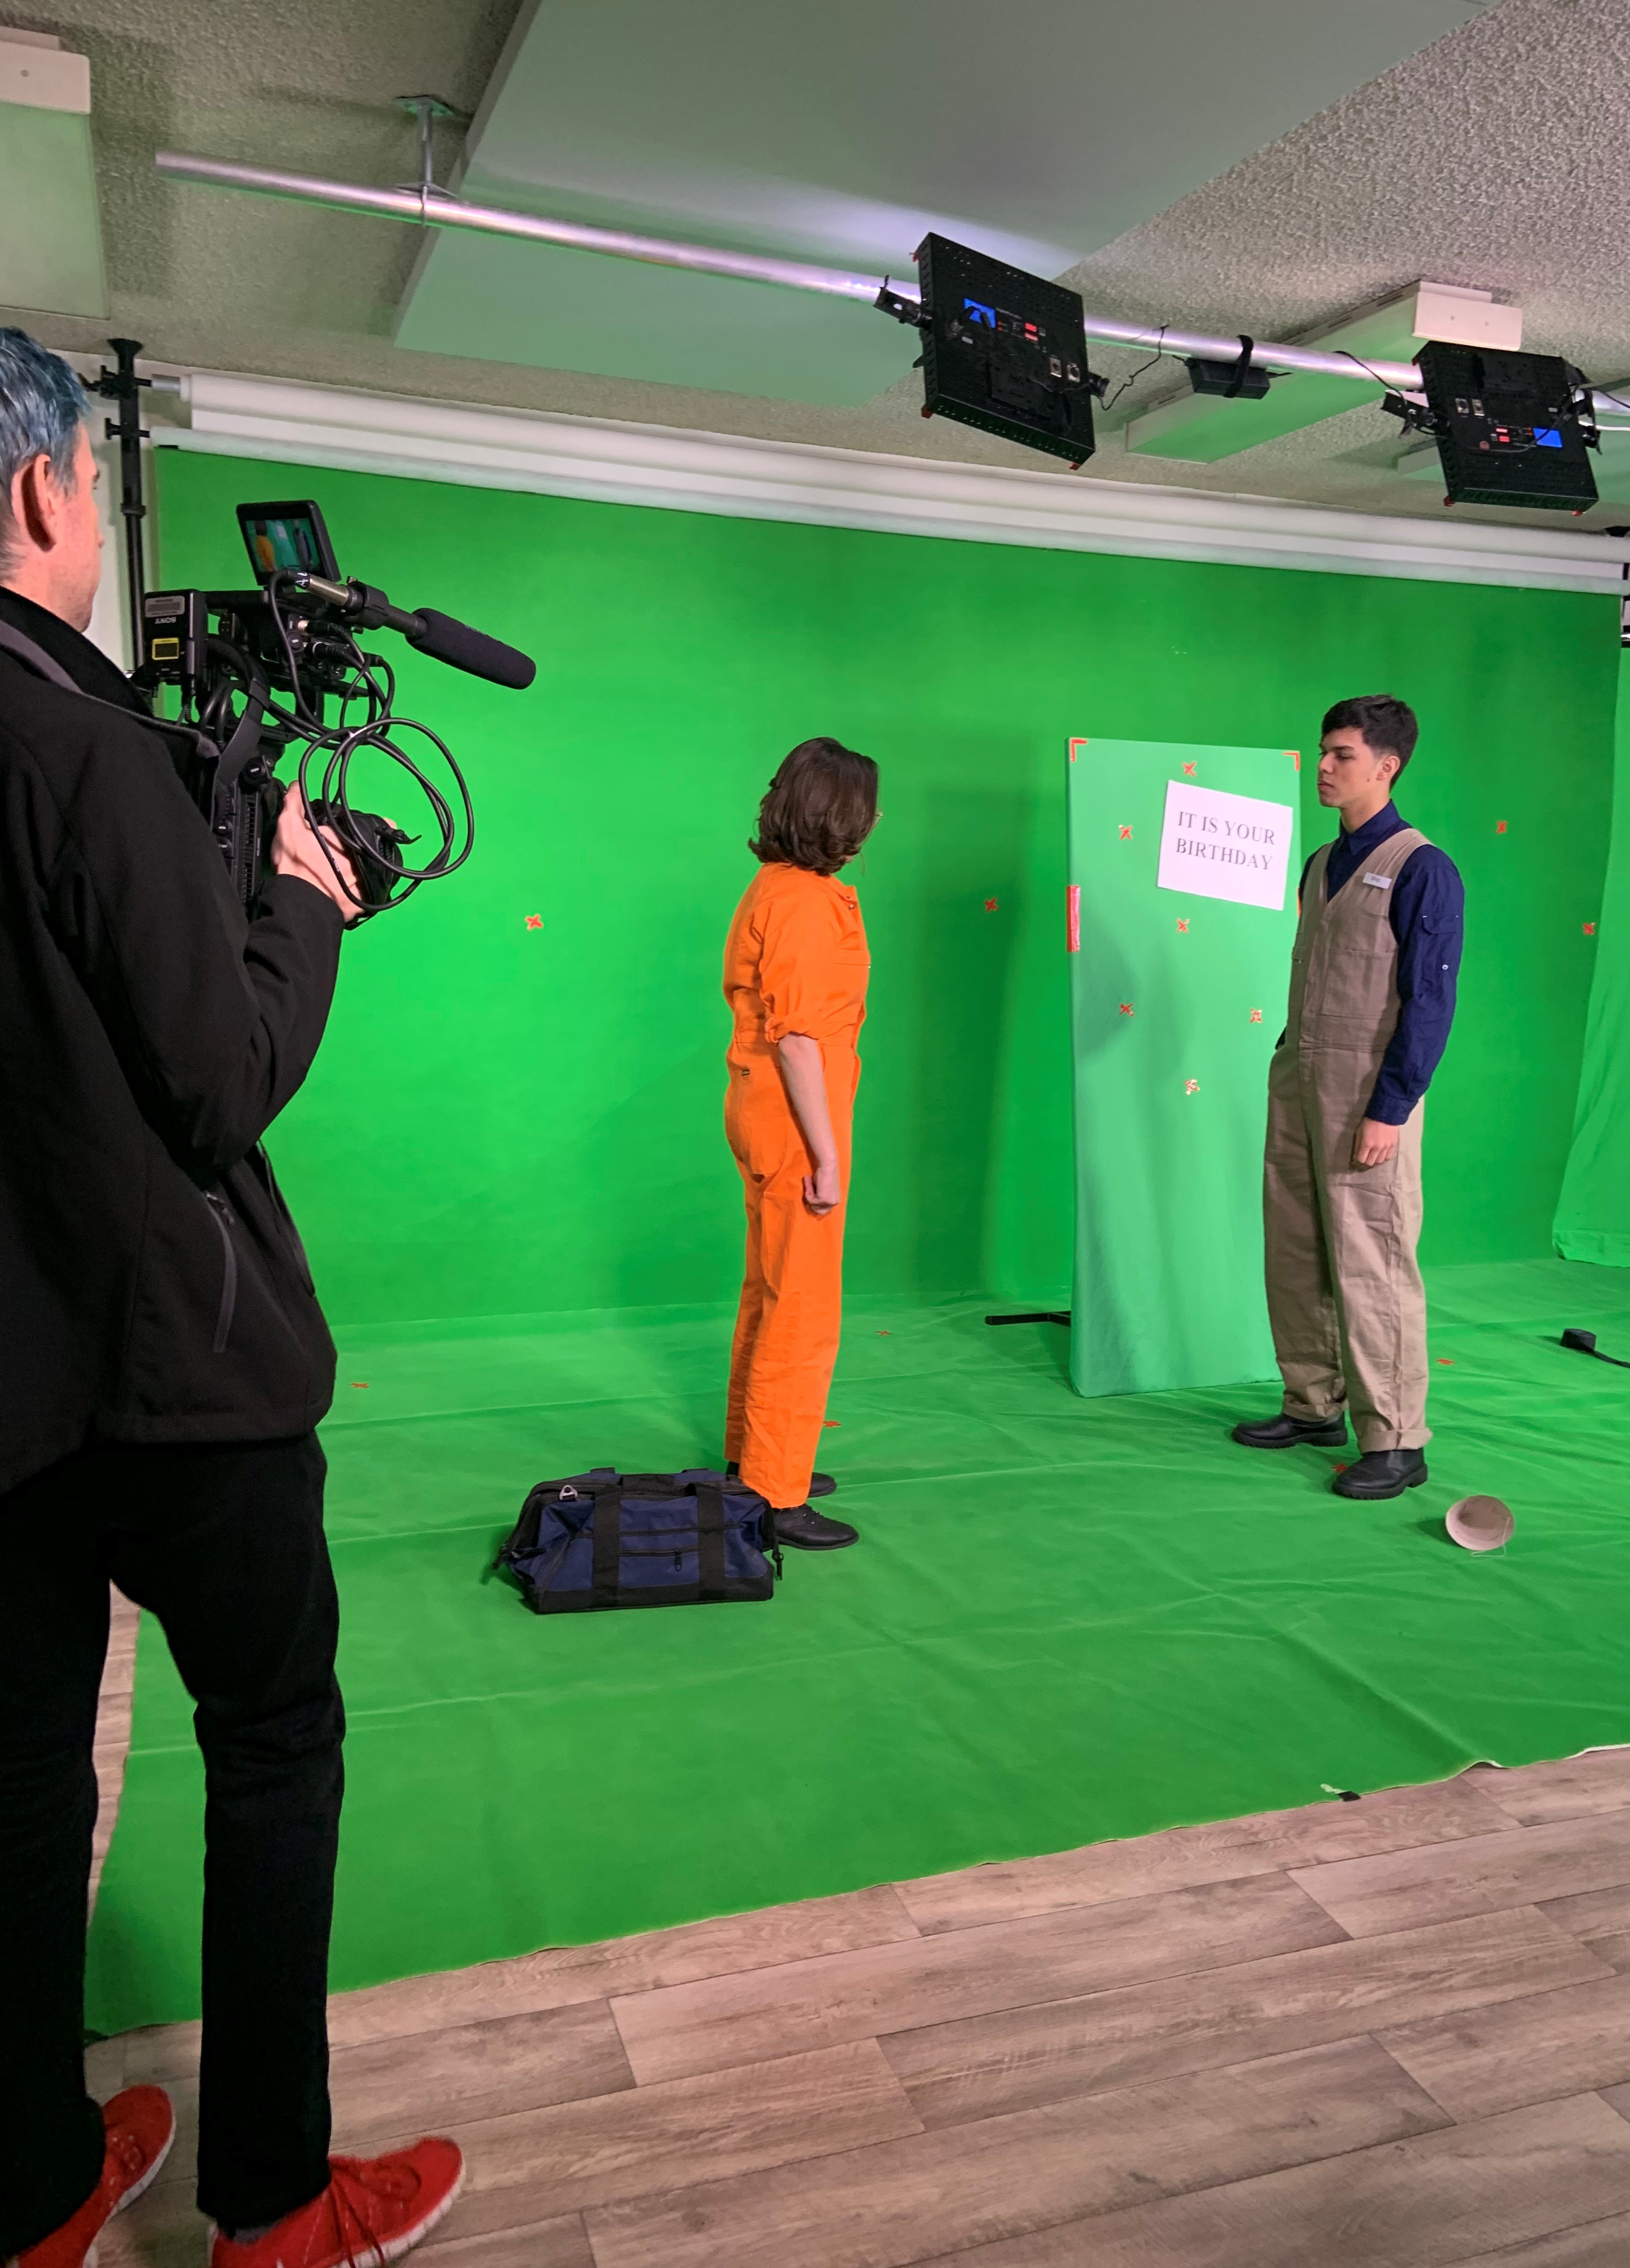 Two actors facing each other and being filmed in front of a green screen